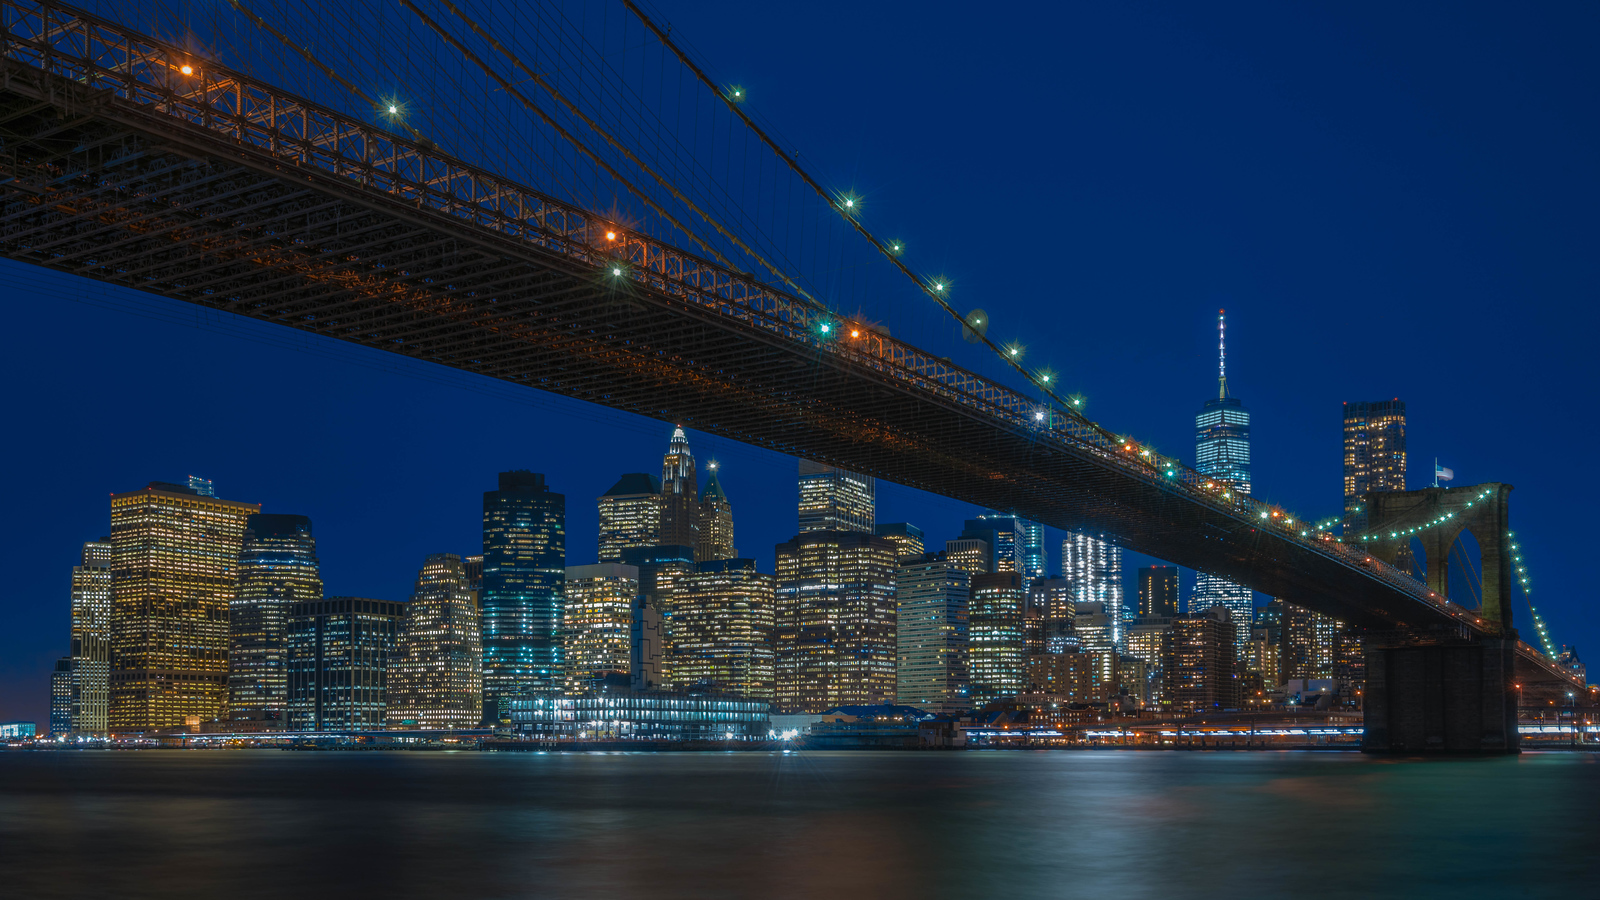 The Manhattan Bridge at night.